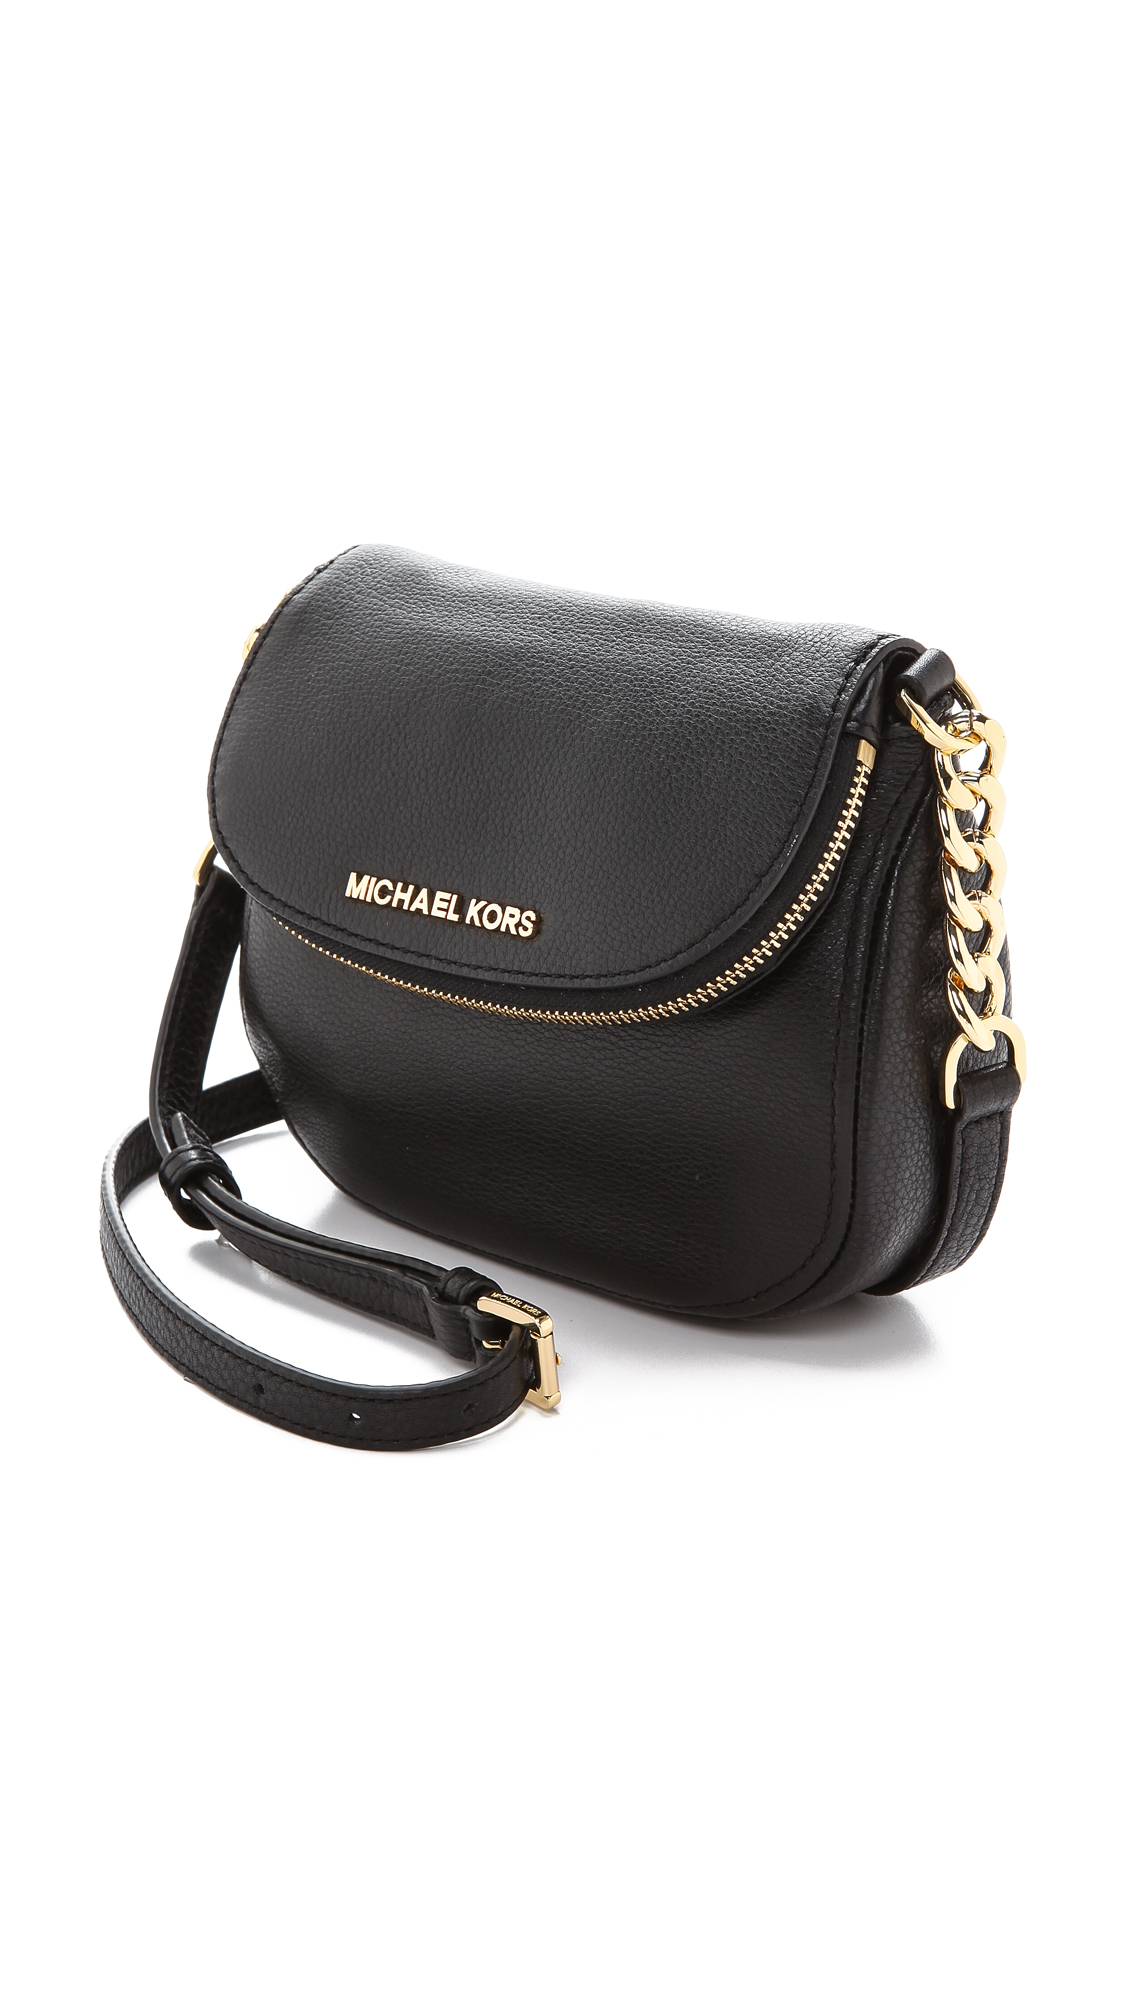 official supplier new authentic 60% discount MICHAEL Michael Kors Bedford Flap Cross Body Bag | SHOPBOP